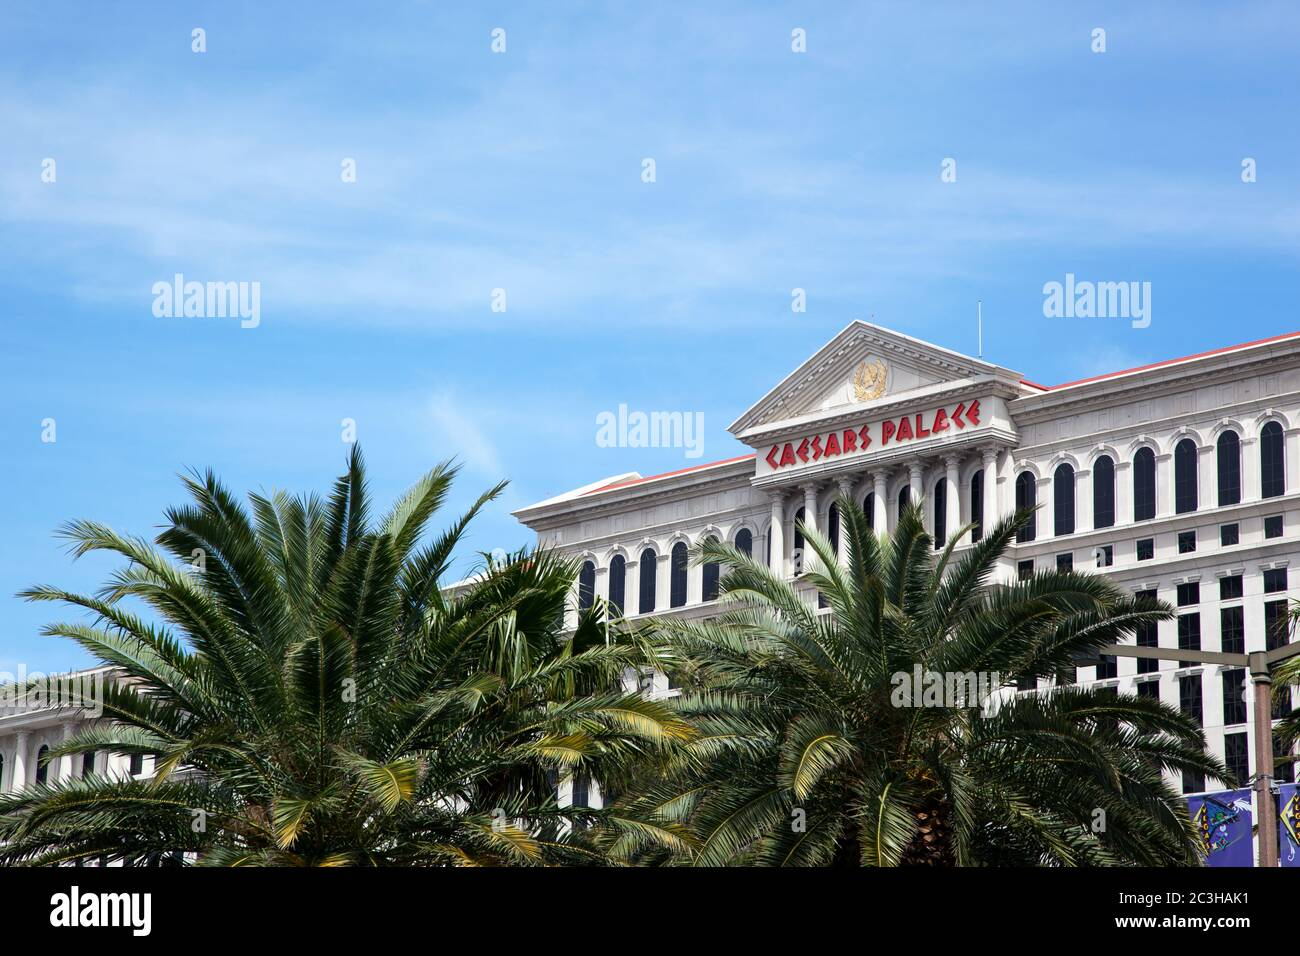 LAS VEGAS, USA - APRIL 18: The famous Caesers Palace Hotel. On 14th May 2012, the owners, Caesers Enertainment Corp. opened its first casino in in 5 y Stock Photo